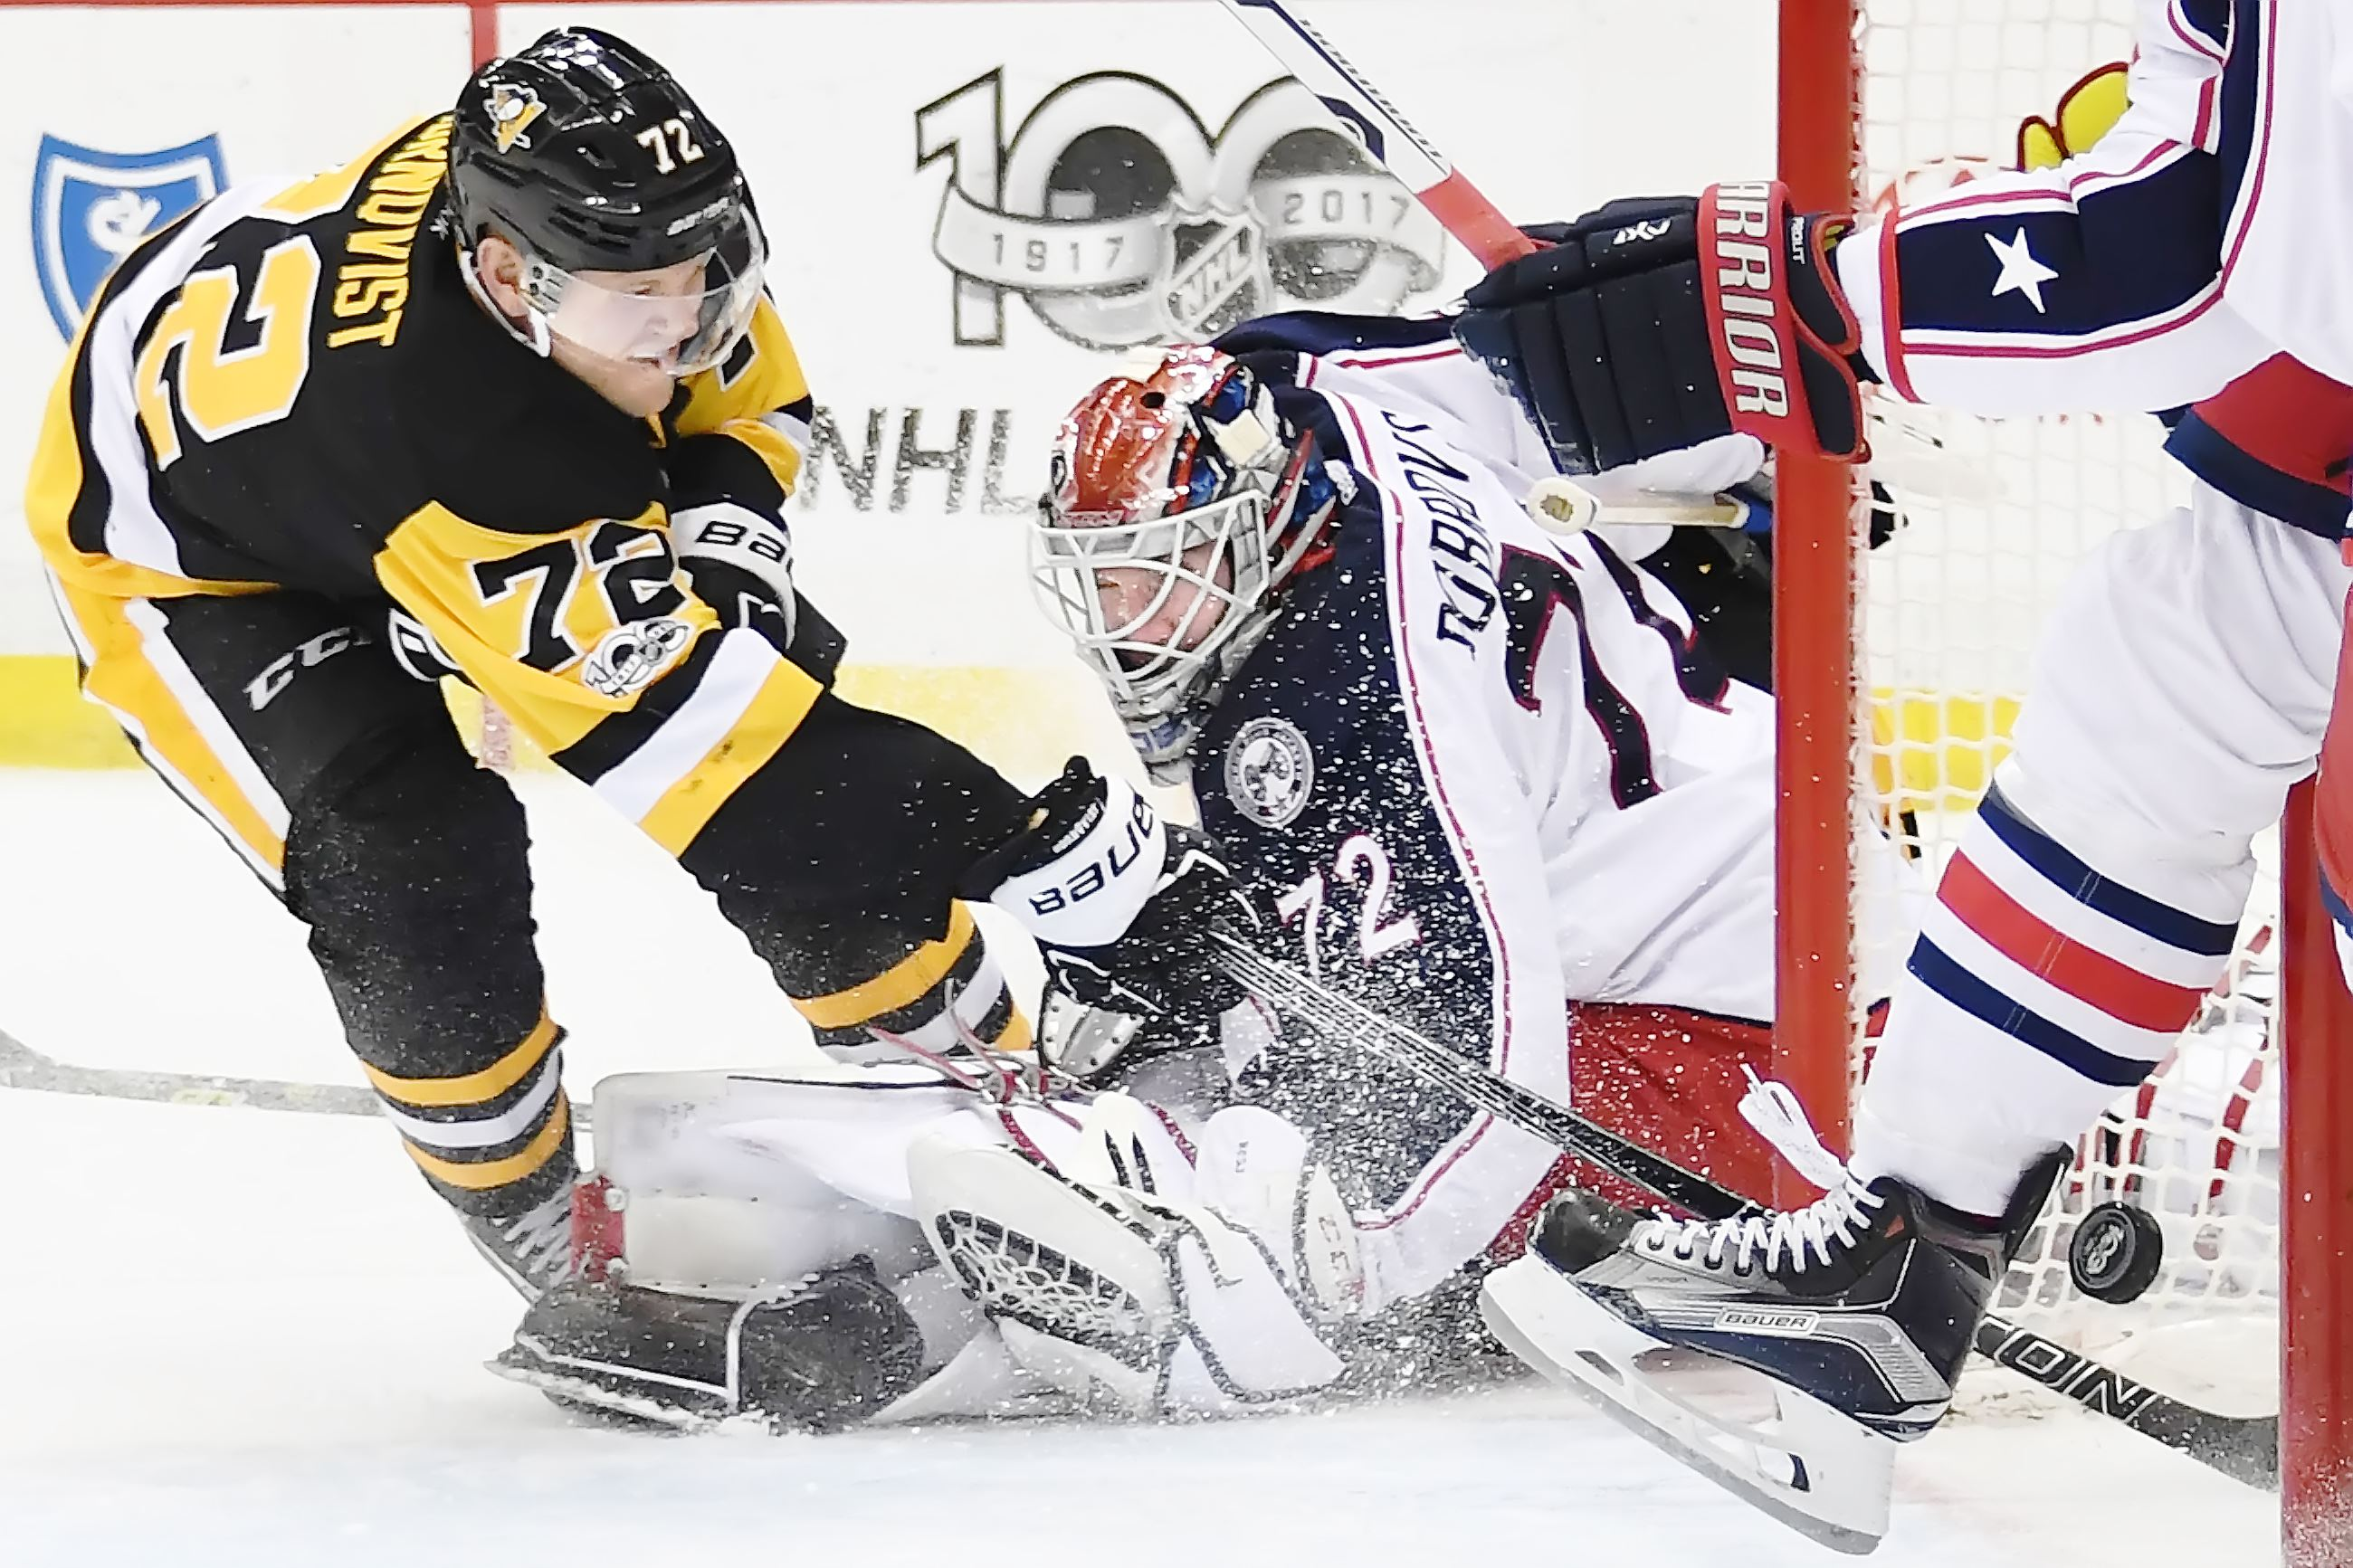 Veteran goalies take center stage for Rangers, Penguins